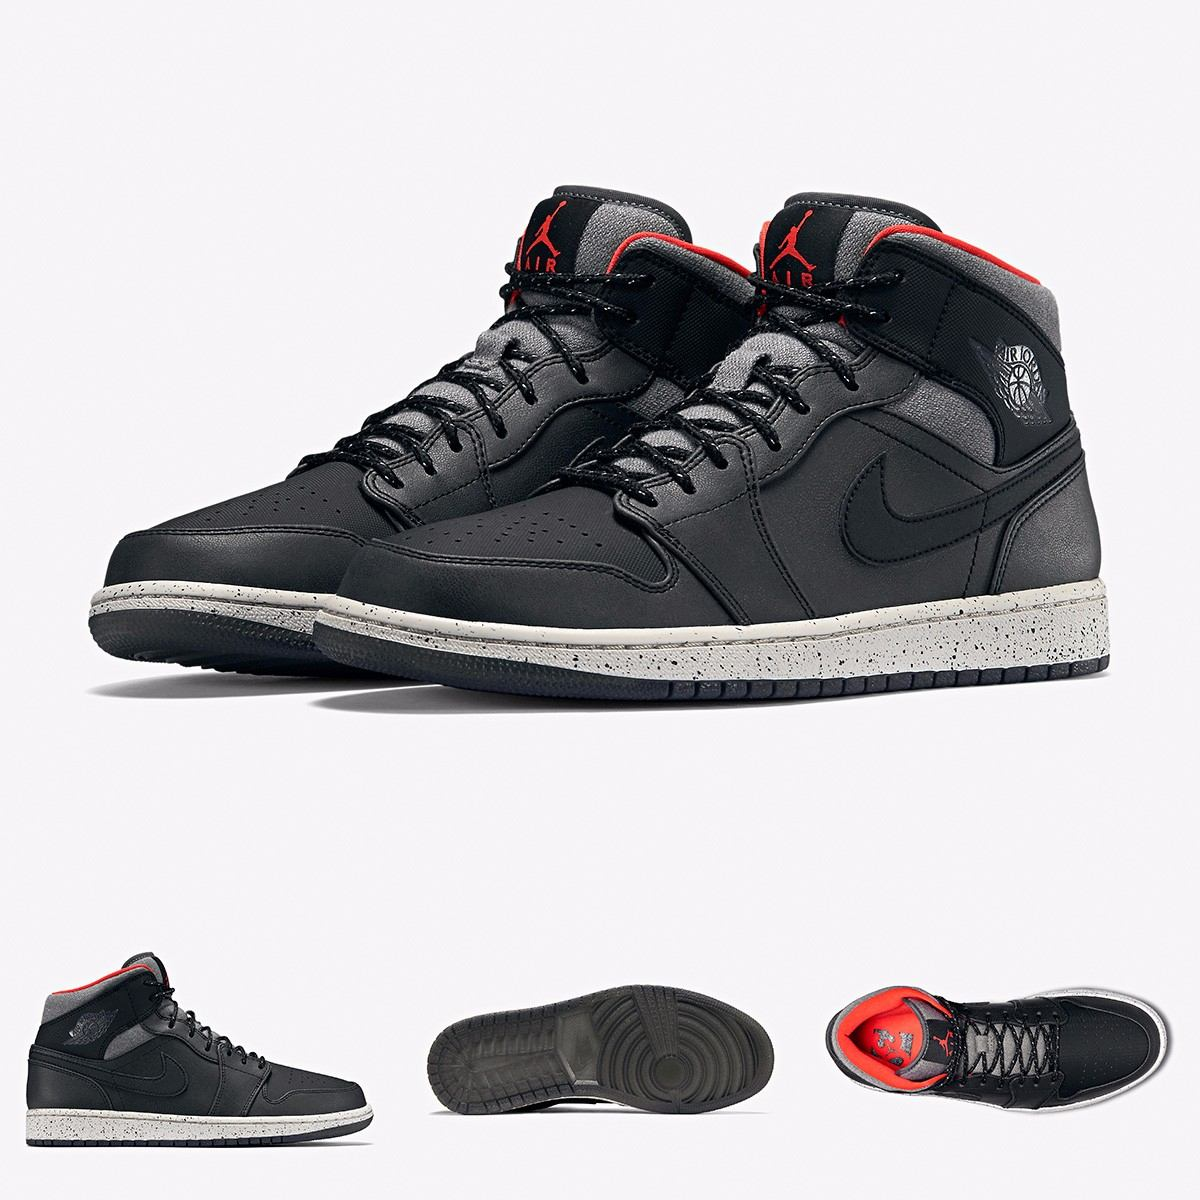 7fdd842bb5e6fe ... zapatillas nike air jordan 1 retro black cement original. Cargando zoom.